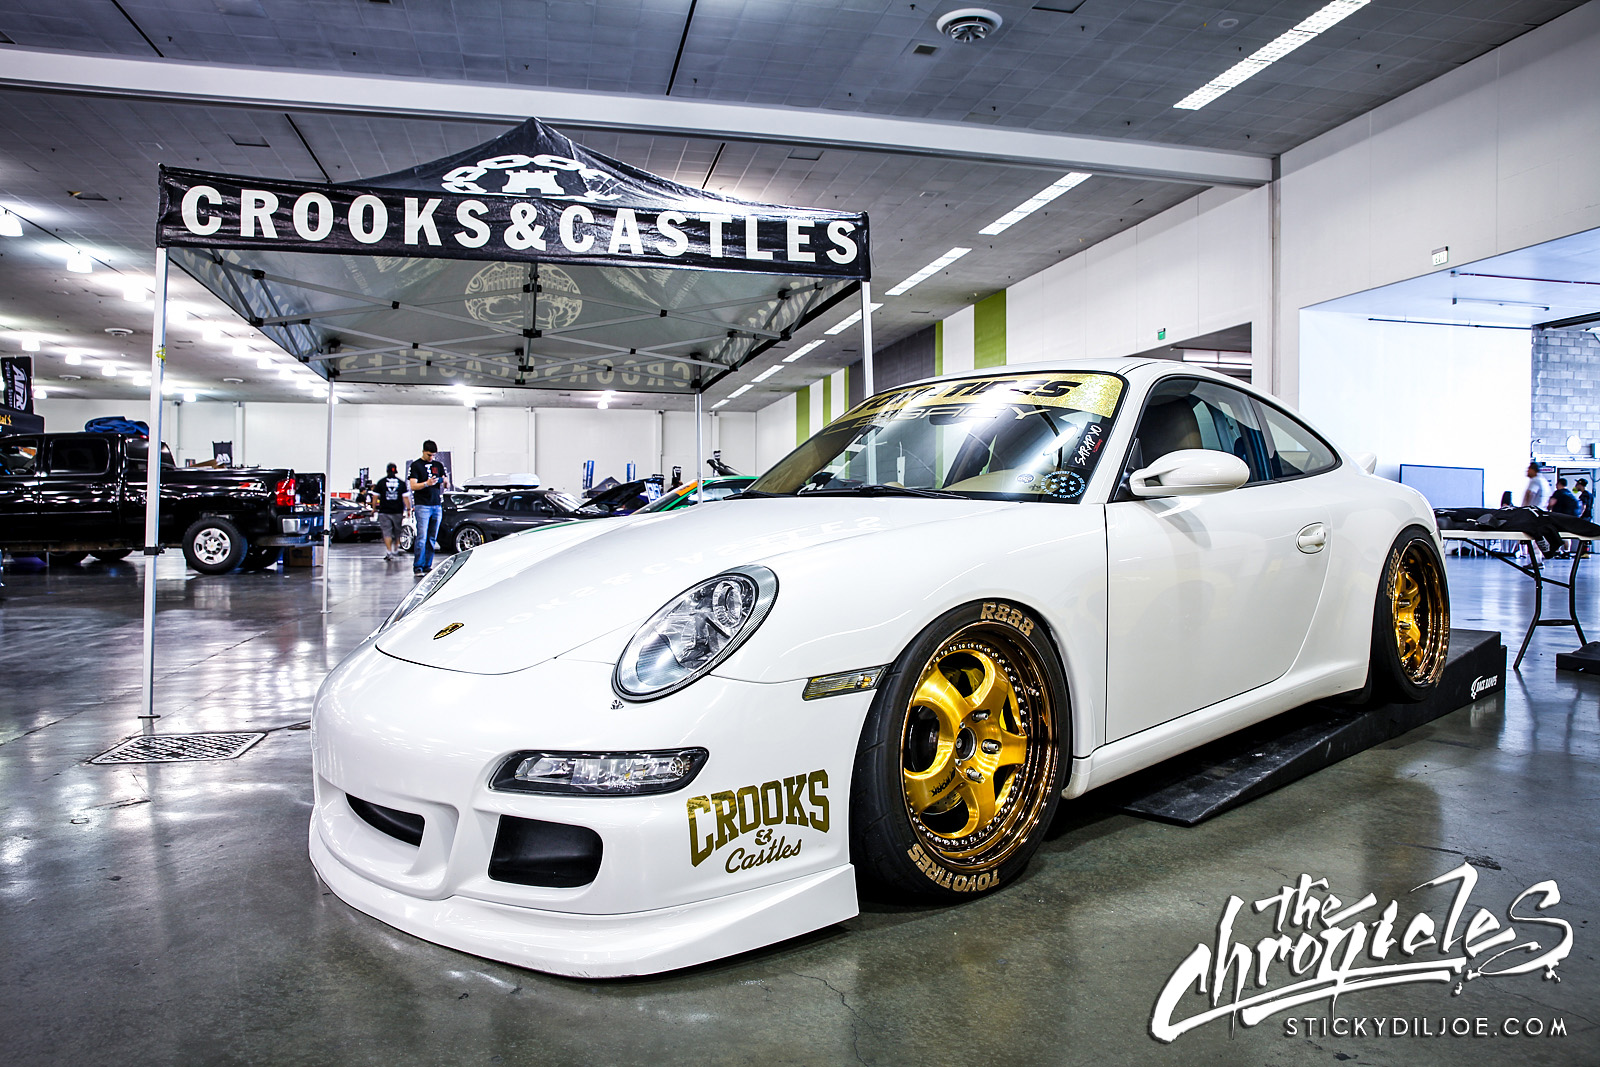 The Chronicles Vlog #11 (Part 2): Wekfest San Jose 2015…